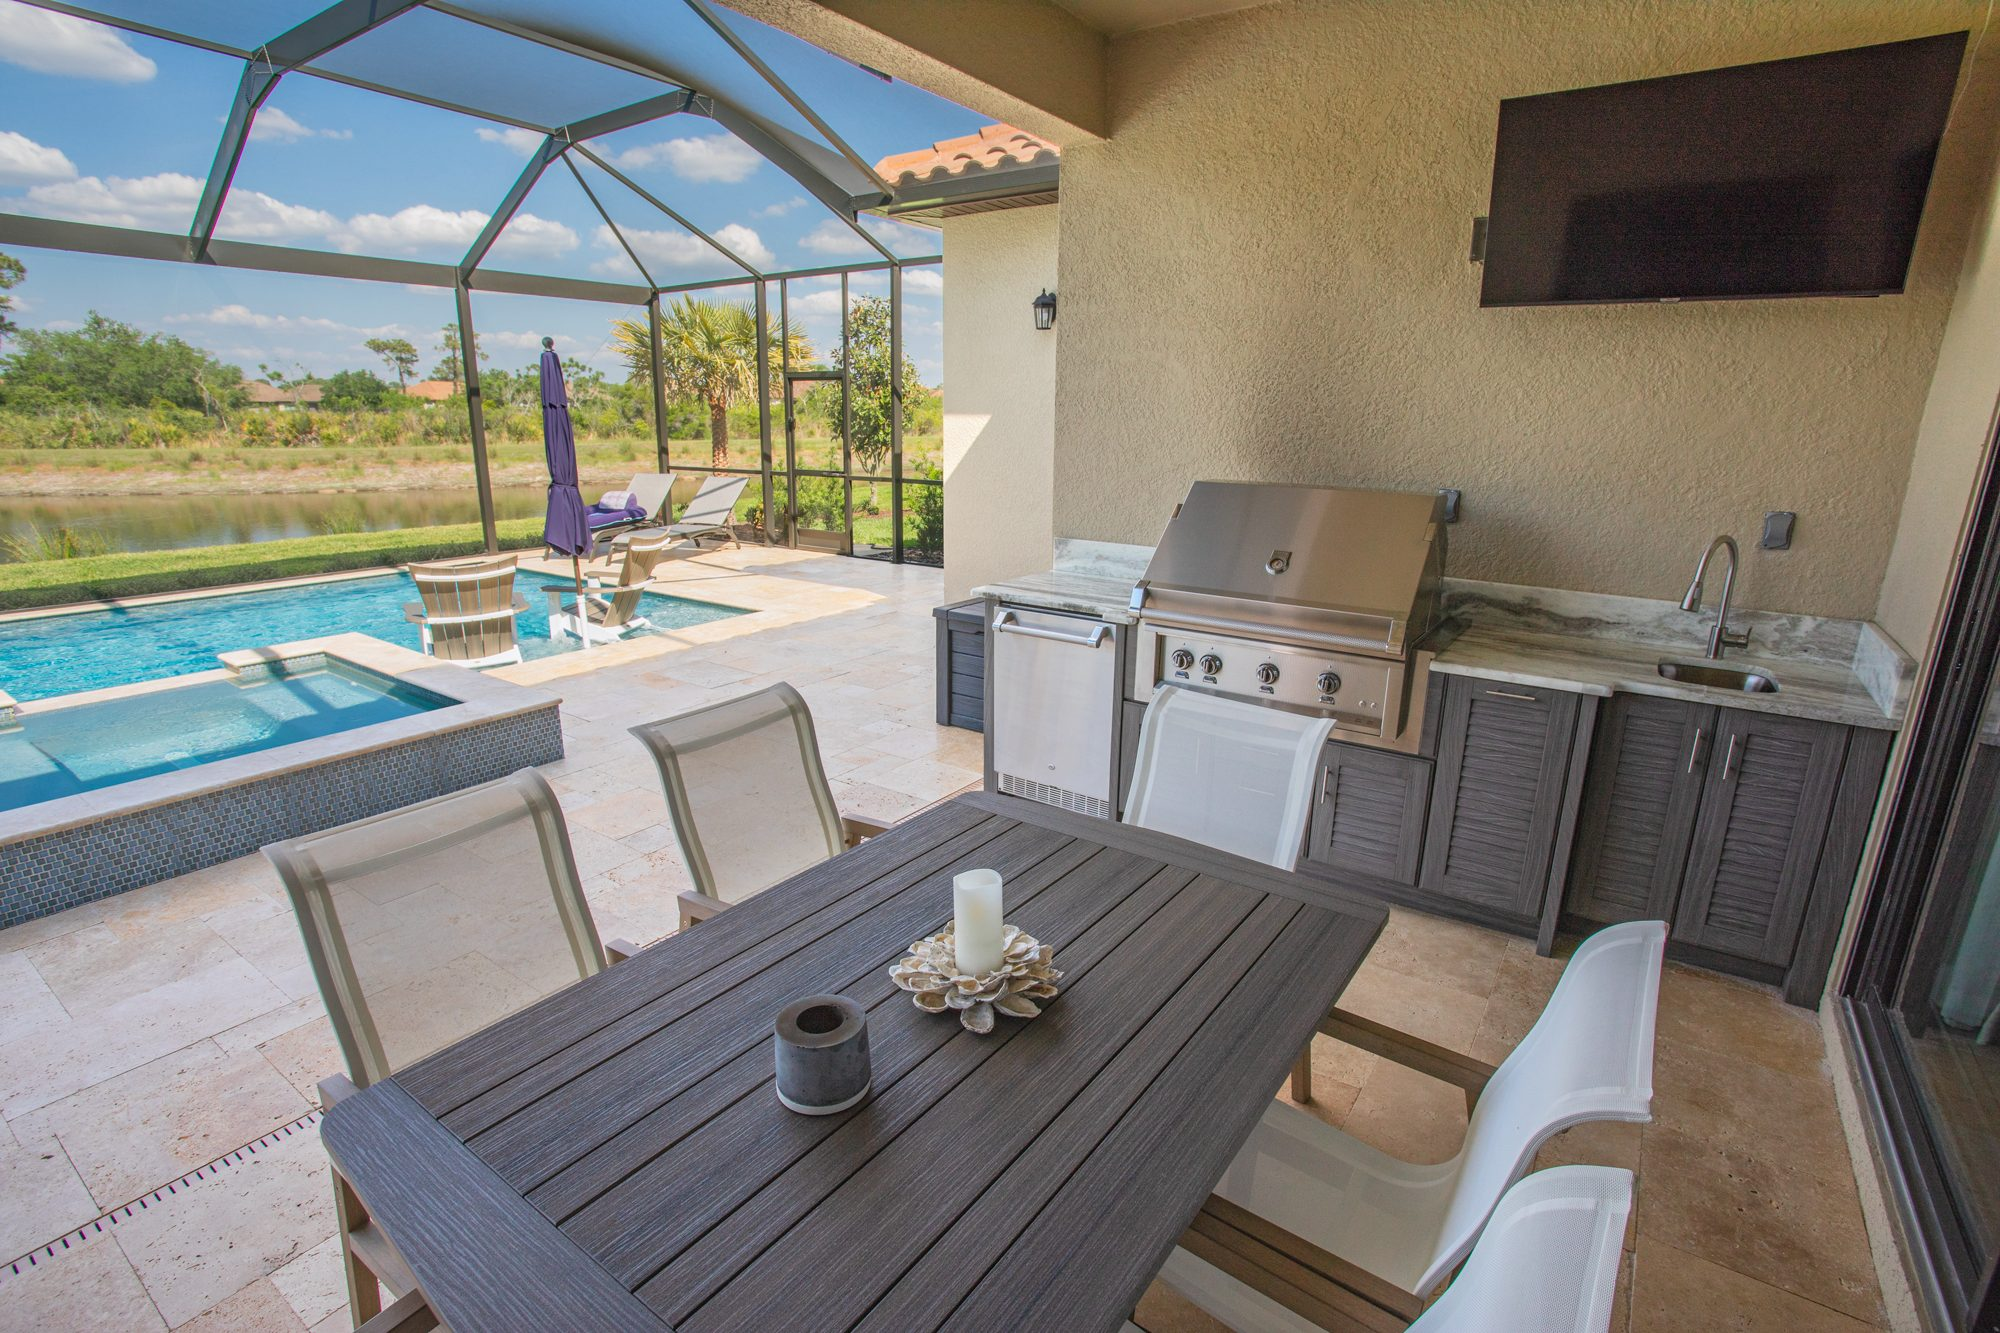 Custom Outdoor Kitchen With Hestan Grill In Tampa | Just Grillin Outdoor Living